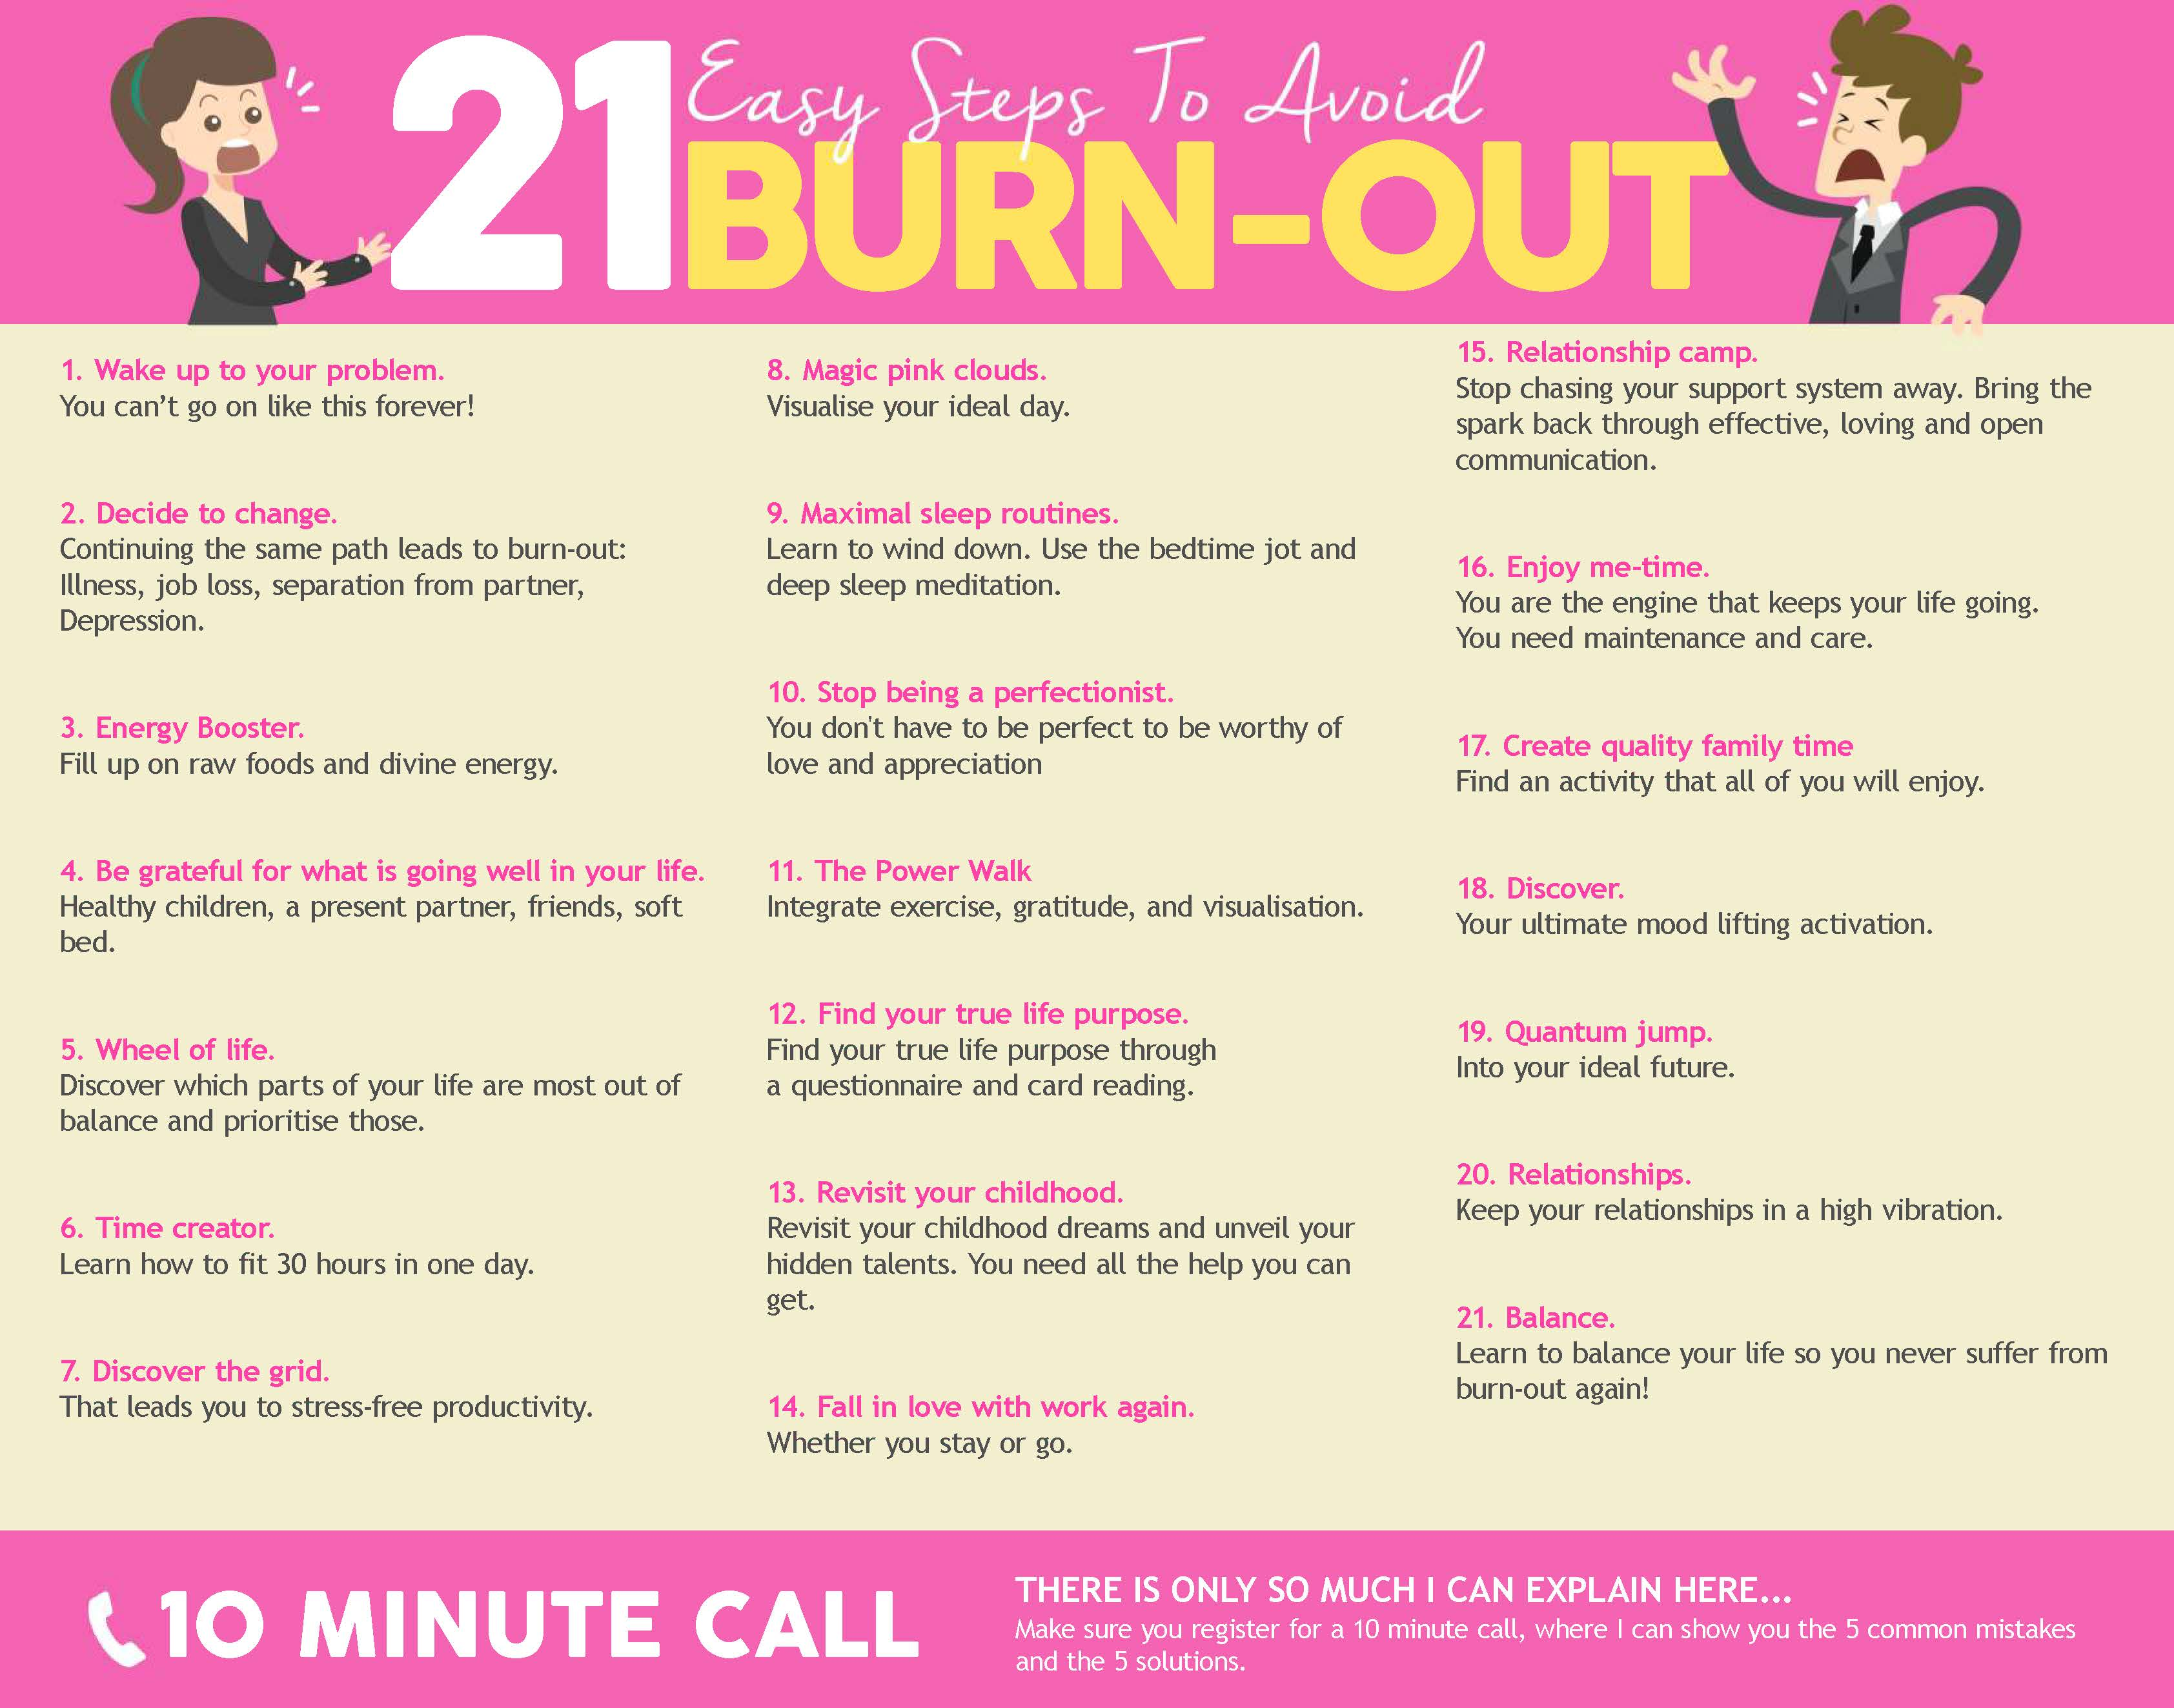 21 Easy Steps To Avoid Burn-out